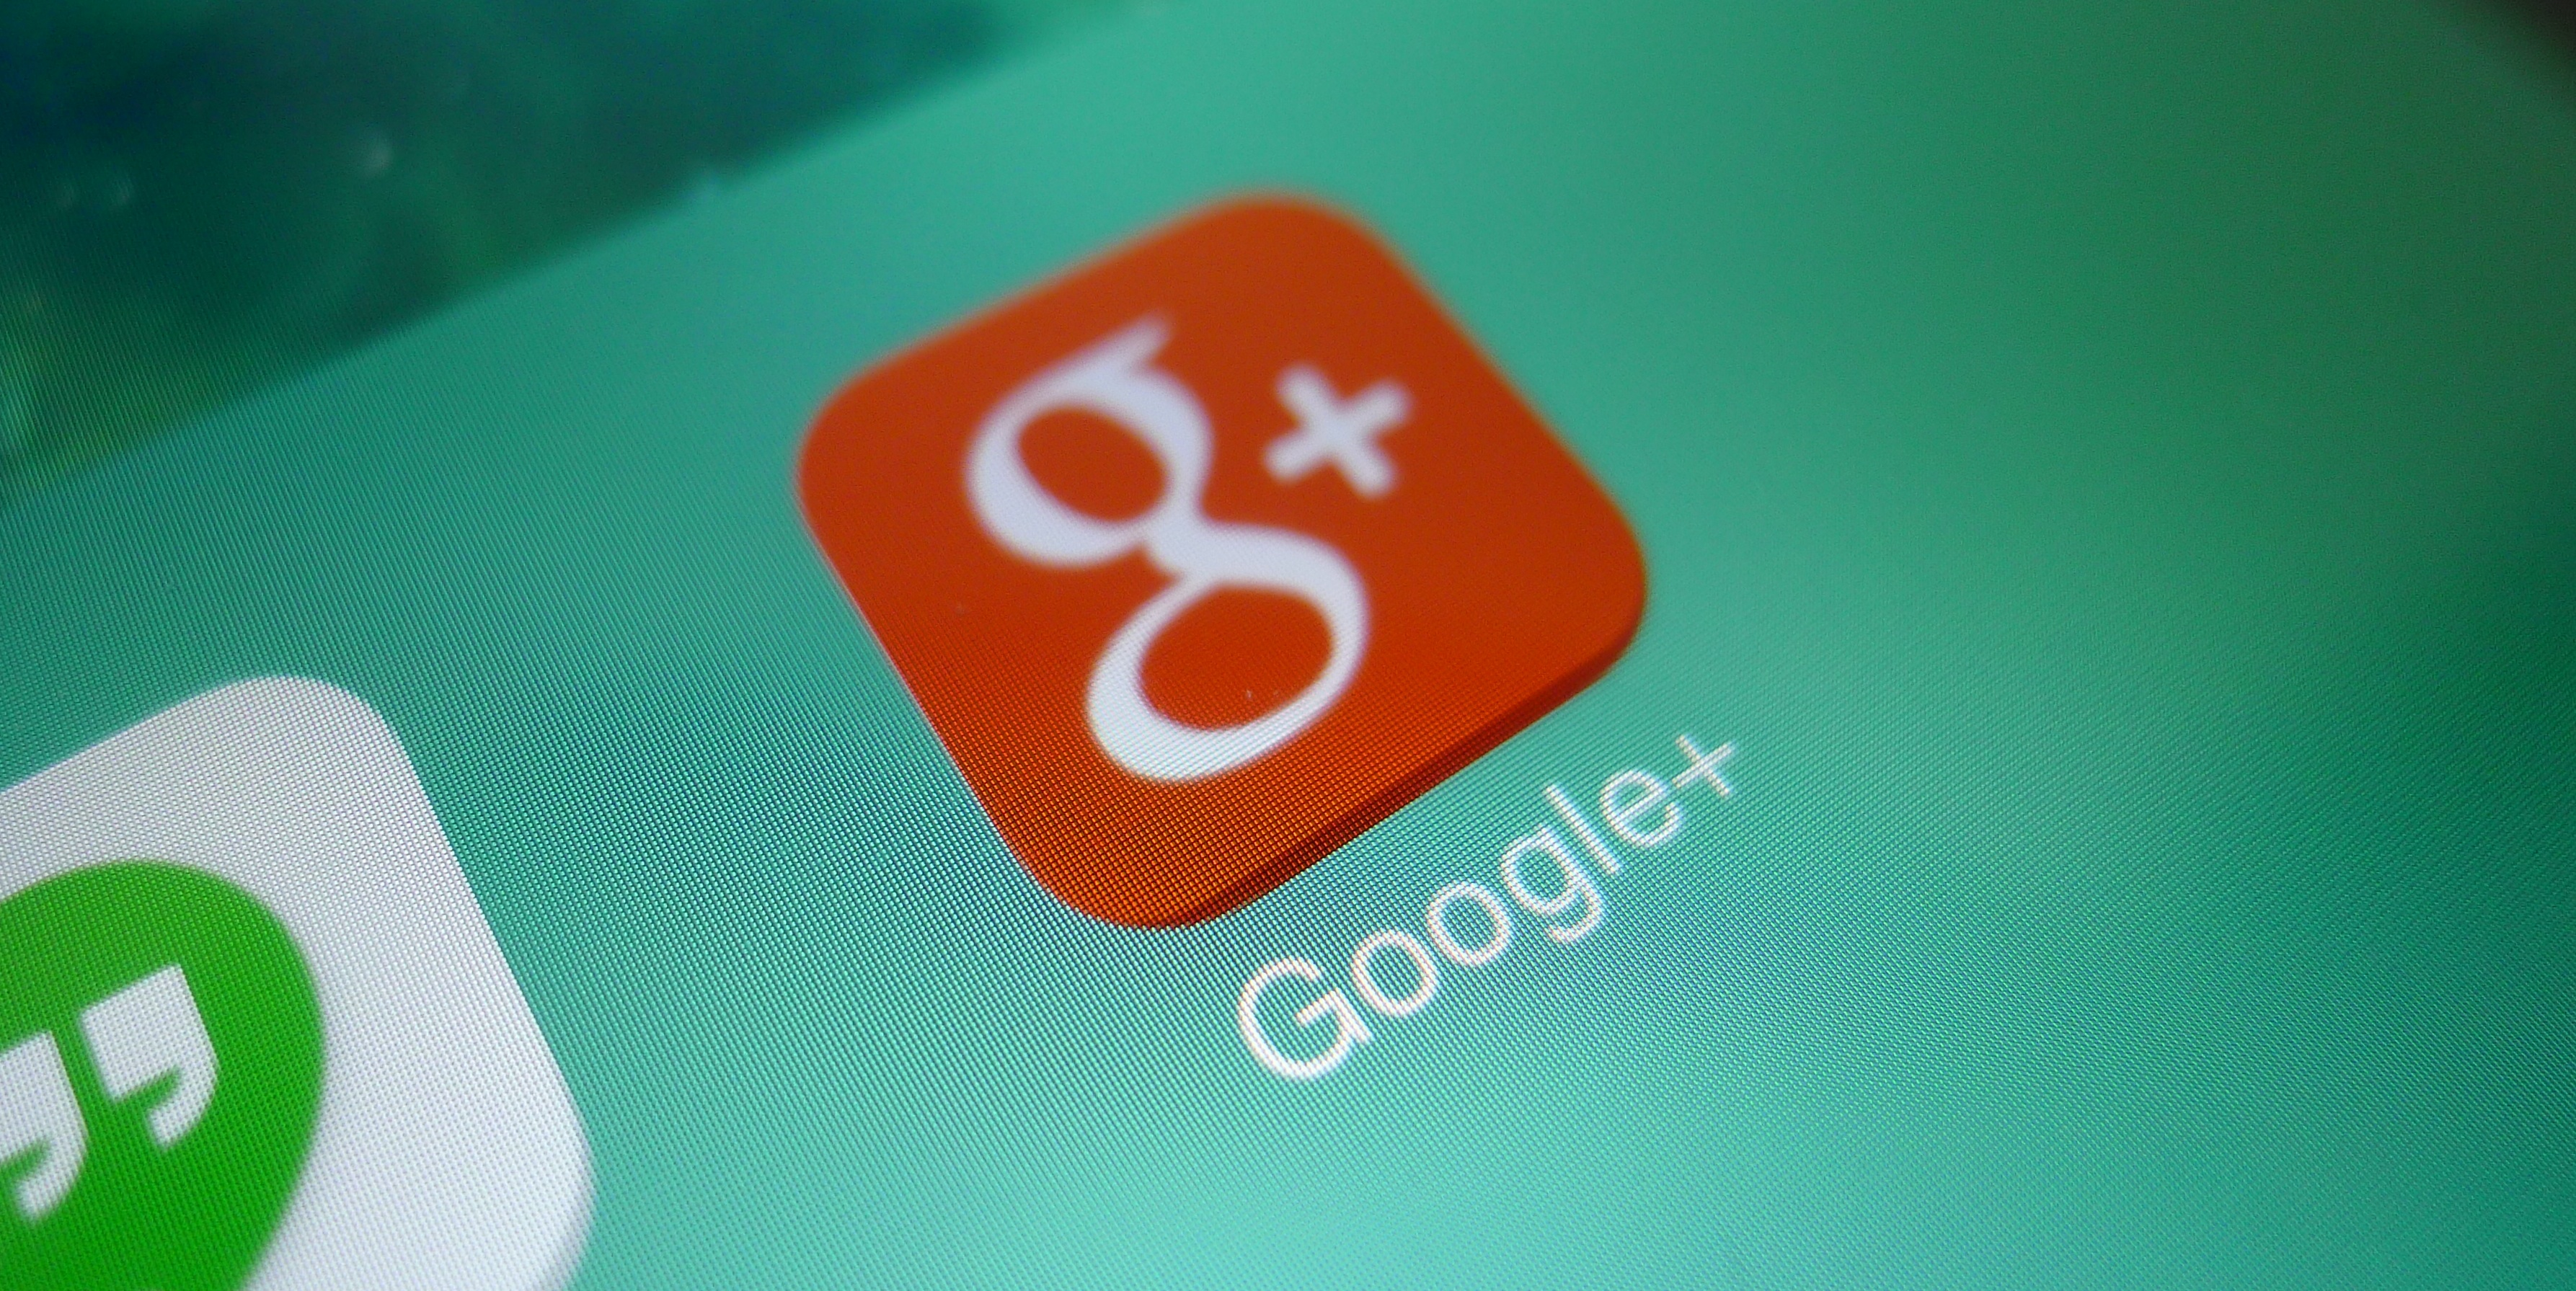 Google+ Gets Full Resolution Photo and Video Backups in iOS 7